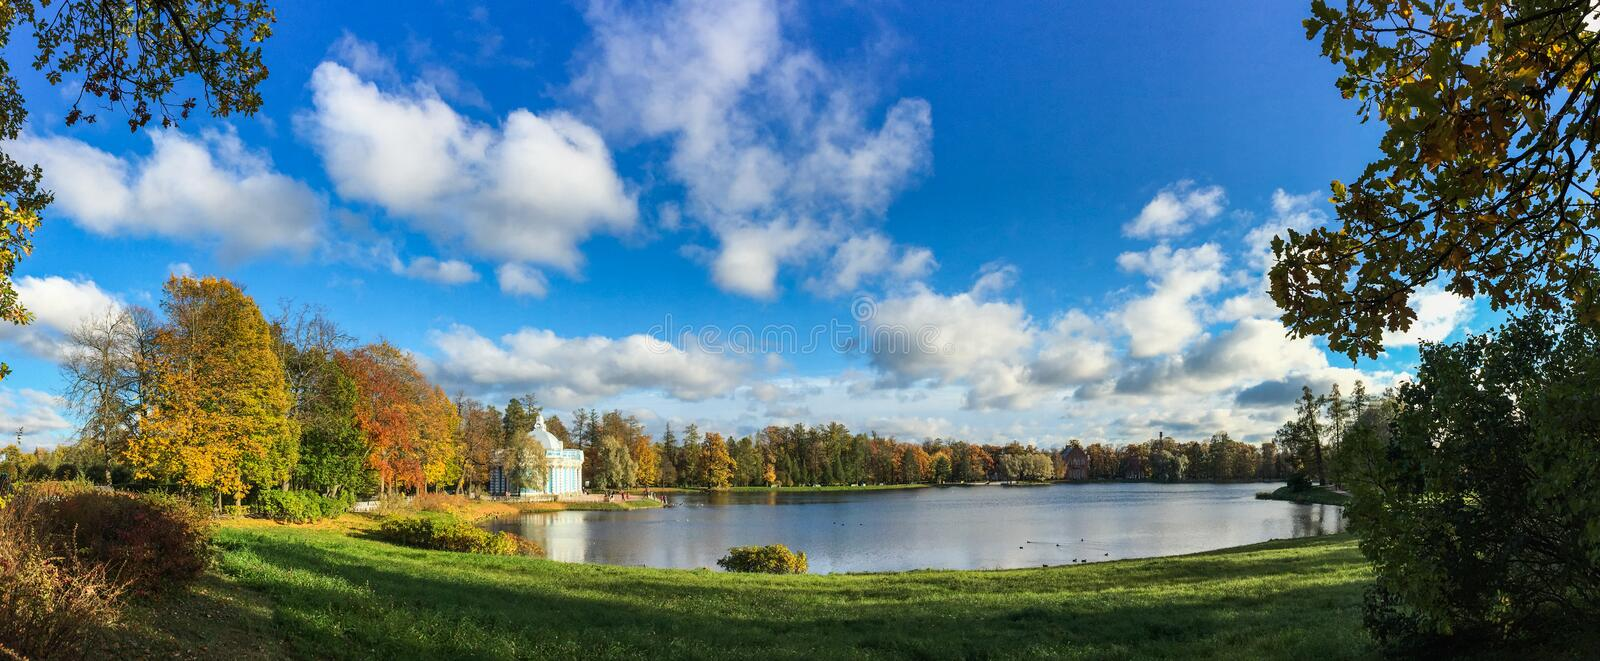 Autumn park in St. Petersburg, Russia. Autumn park with the lake at sunny day in St. Petersburg, Russia stock images